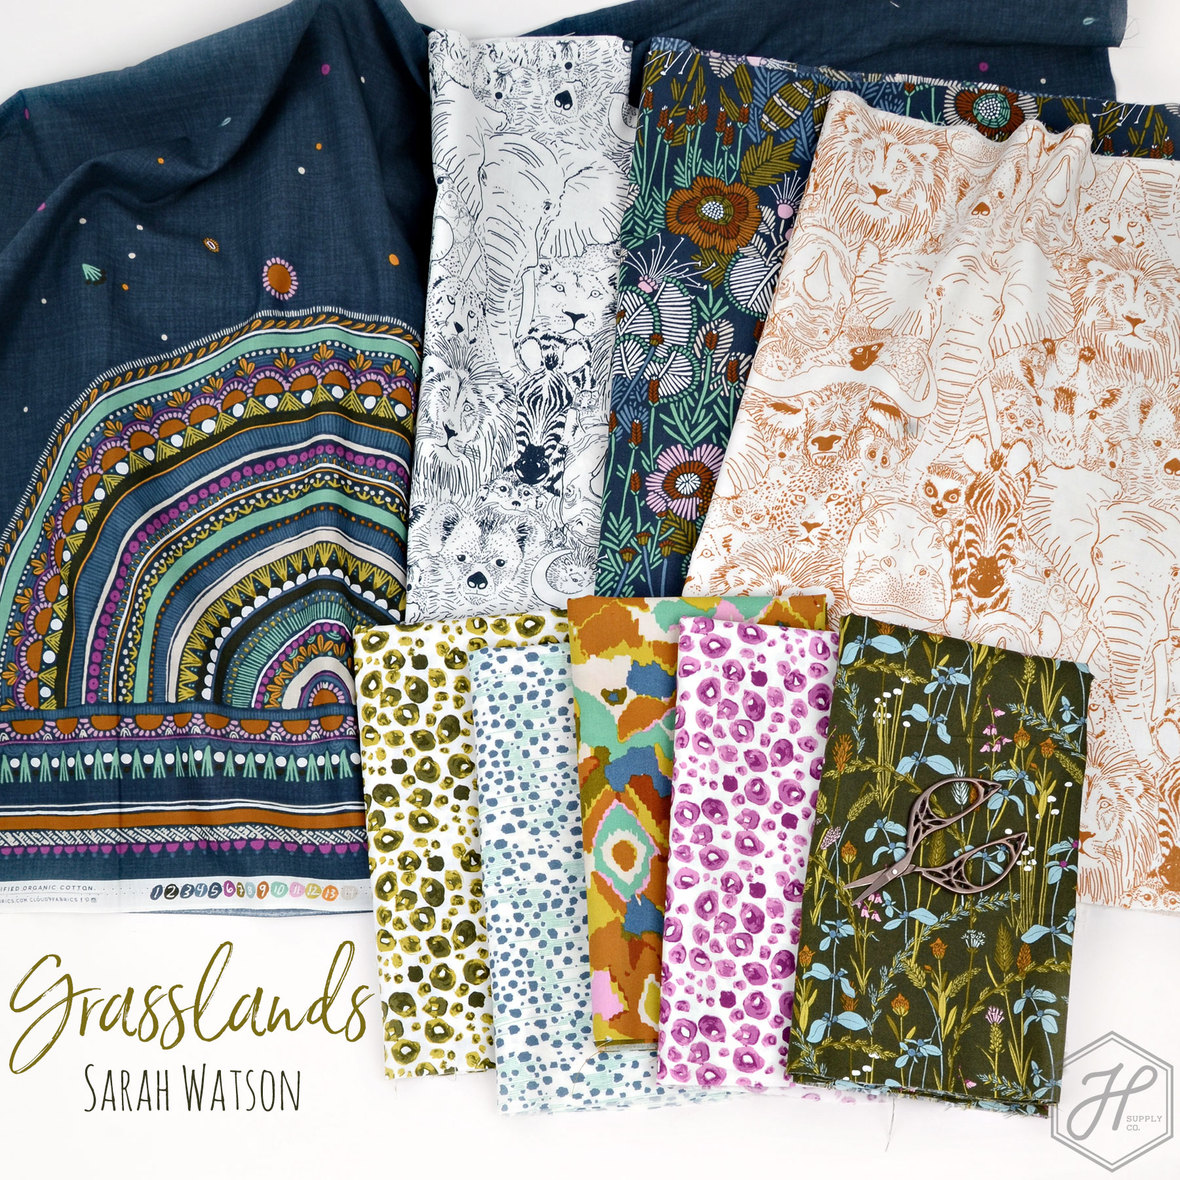 Grasslands-Fabric-Sarah-Watson-for-Cloud-9-at-Hawthorne-Supply-Co.